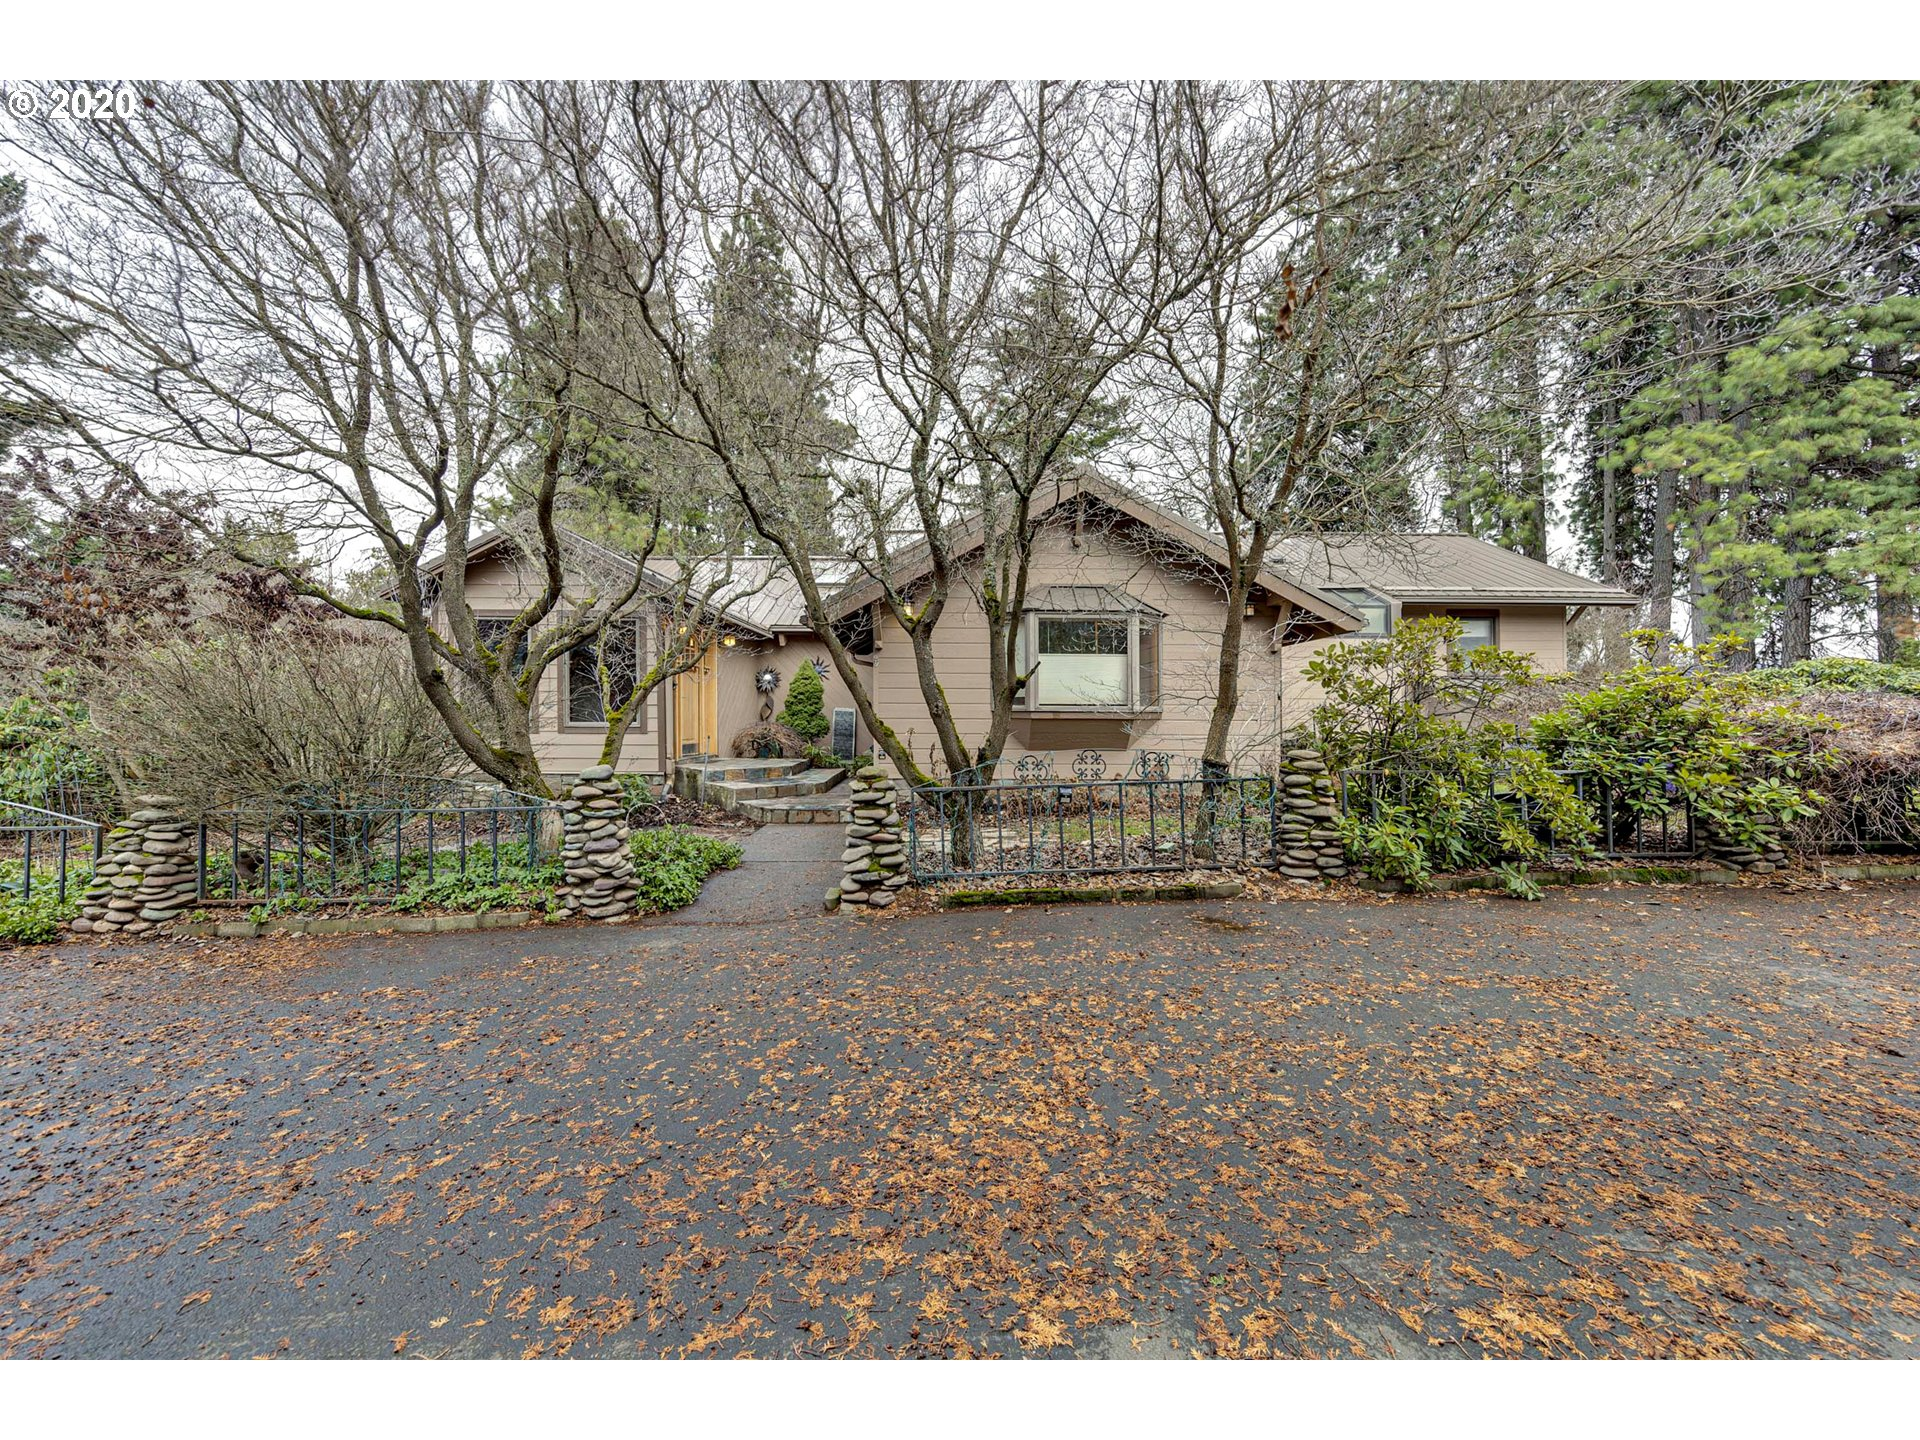 Photo of 1300 INDIAN CREEK RD Hood River OR 97031